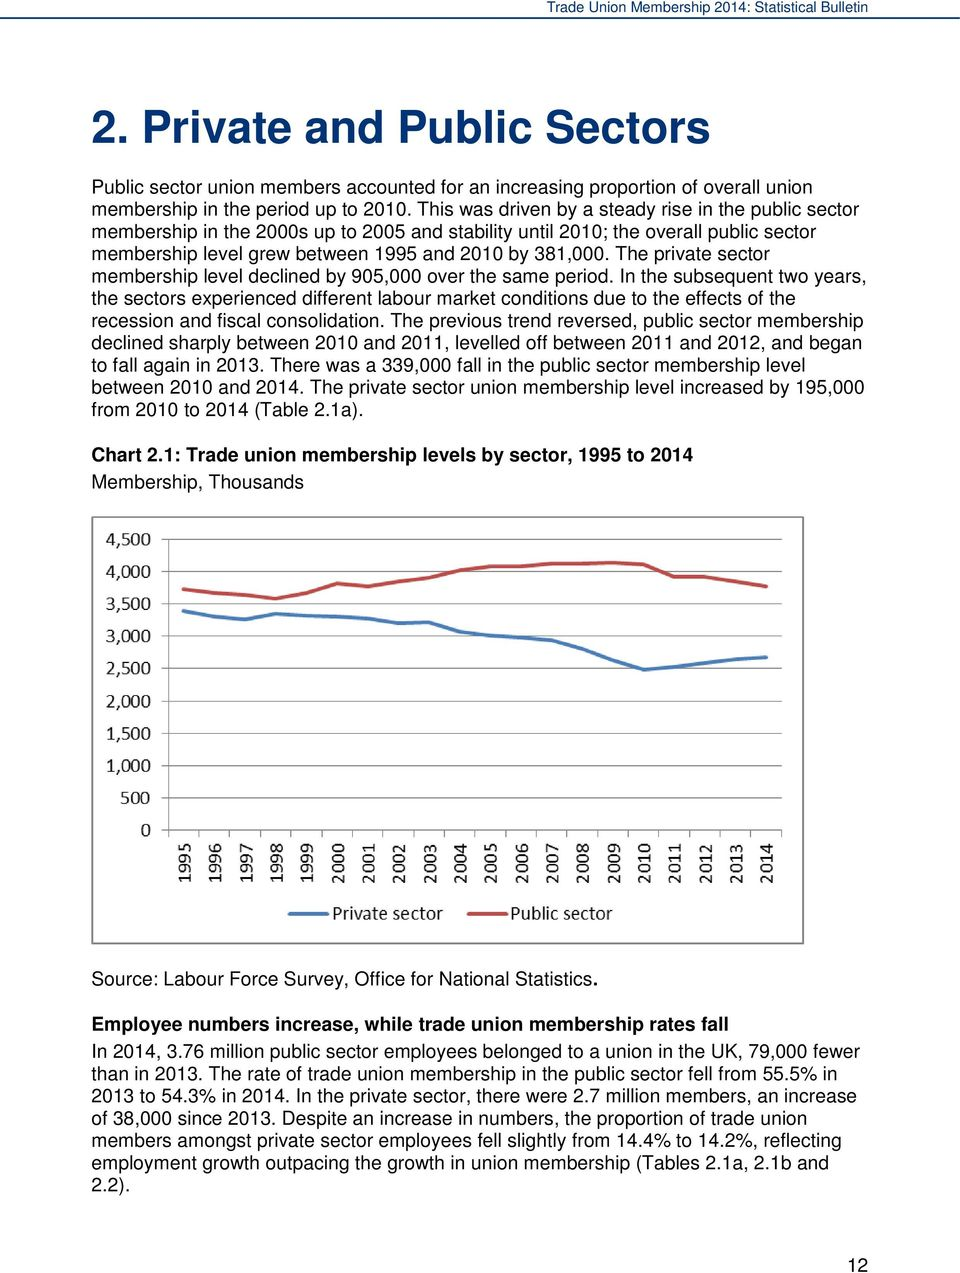 The private sector membership level declined by 905,000 over the same period.